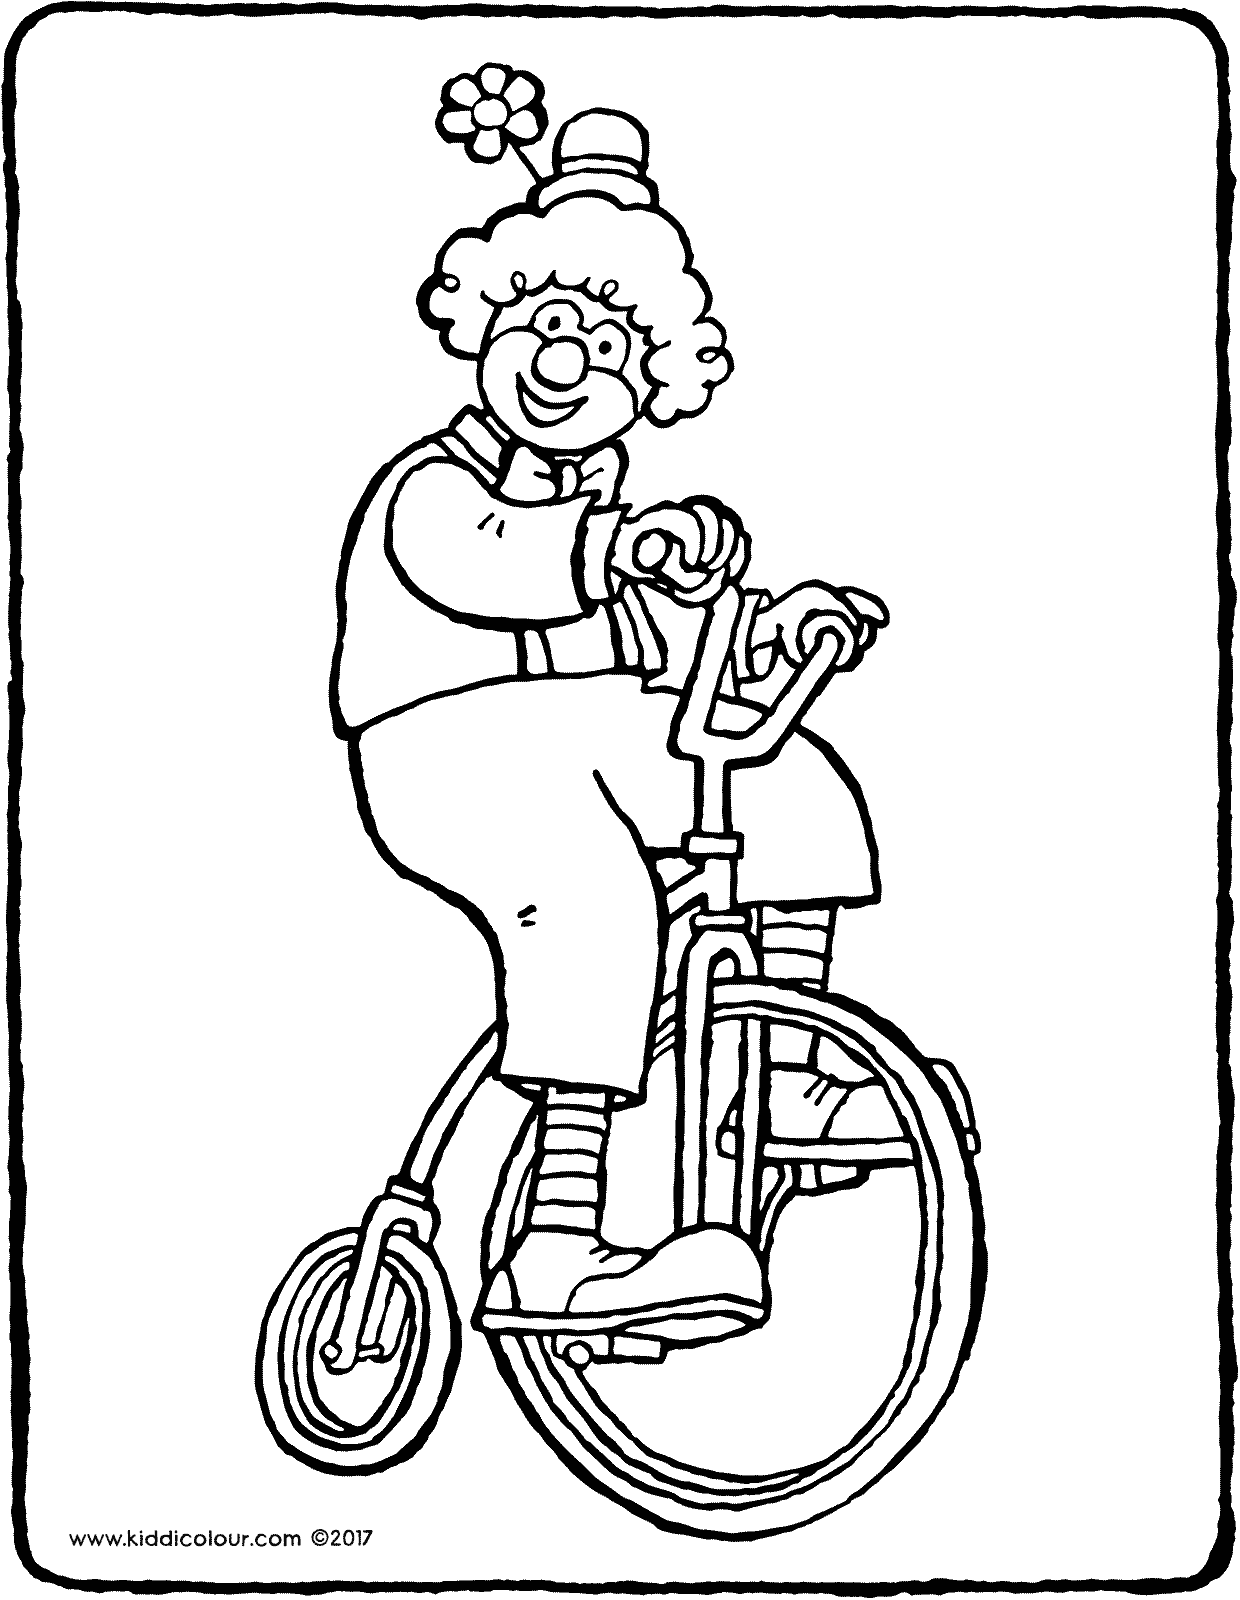 Coloriage Clown Voiture.Un Clown Sur Un Velo Kiddicoloriage